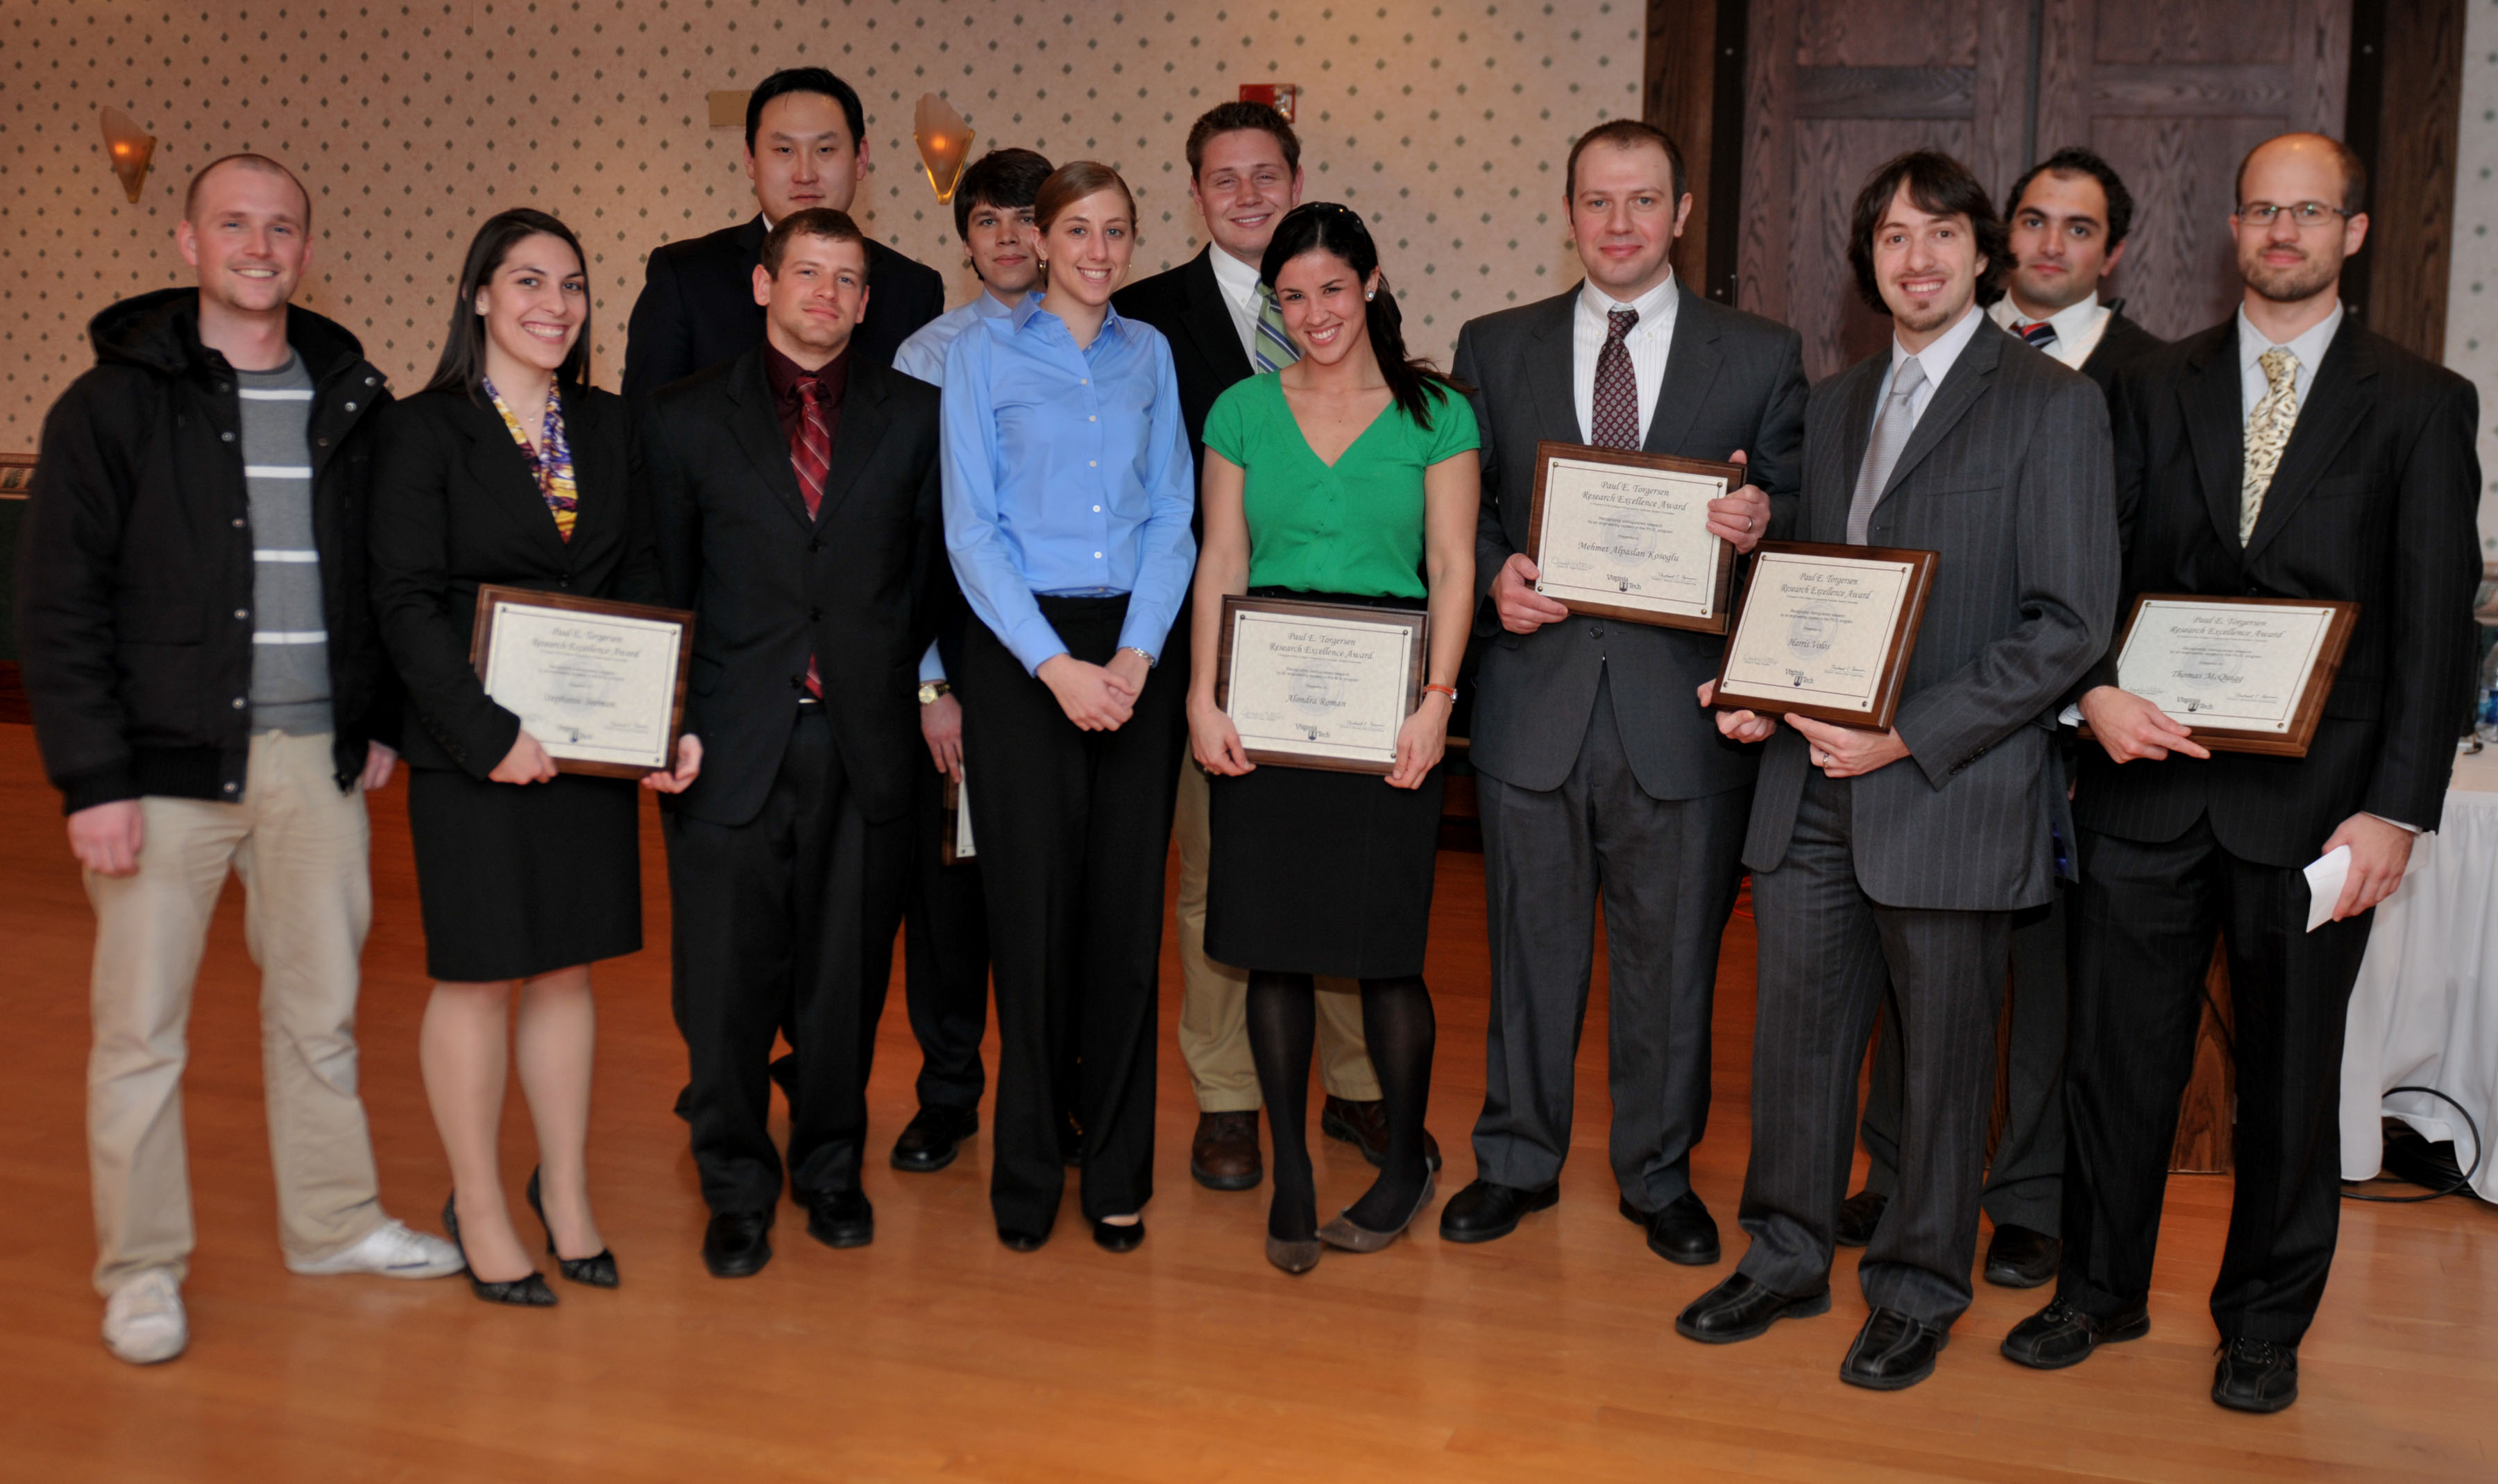 2011 Torgersen Award winners